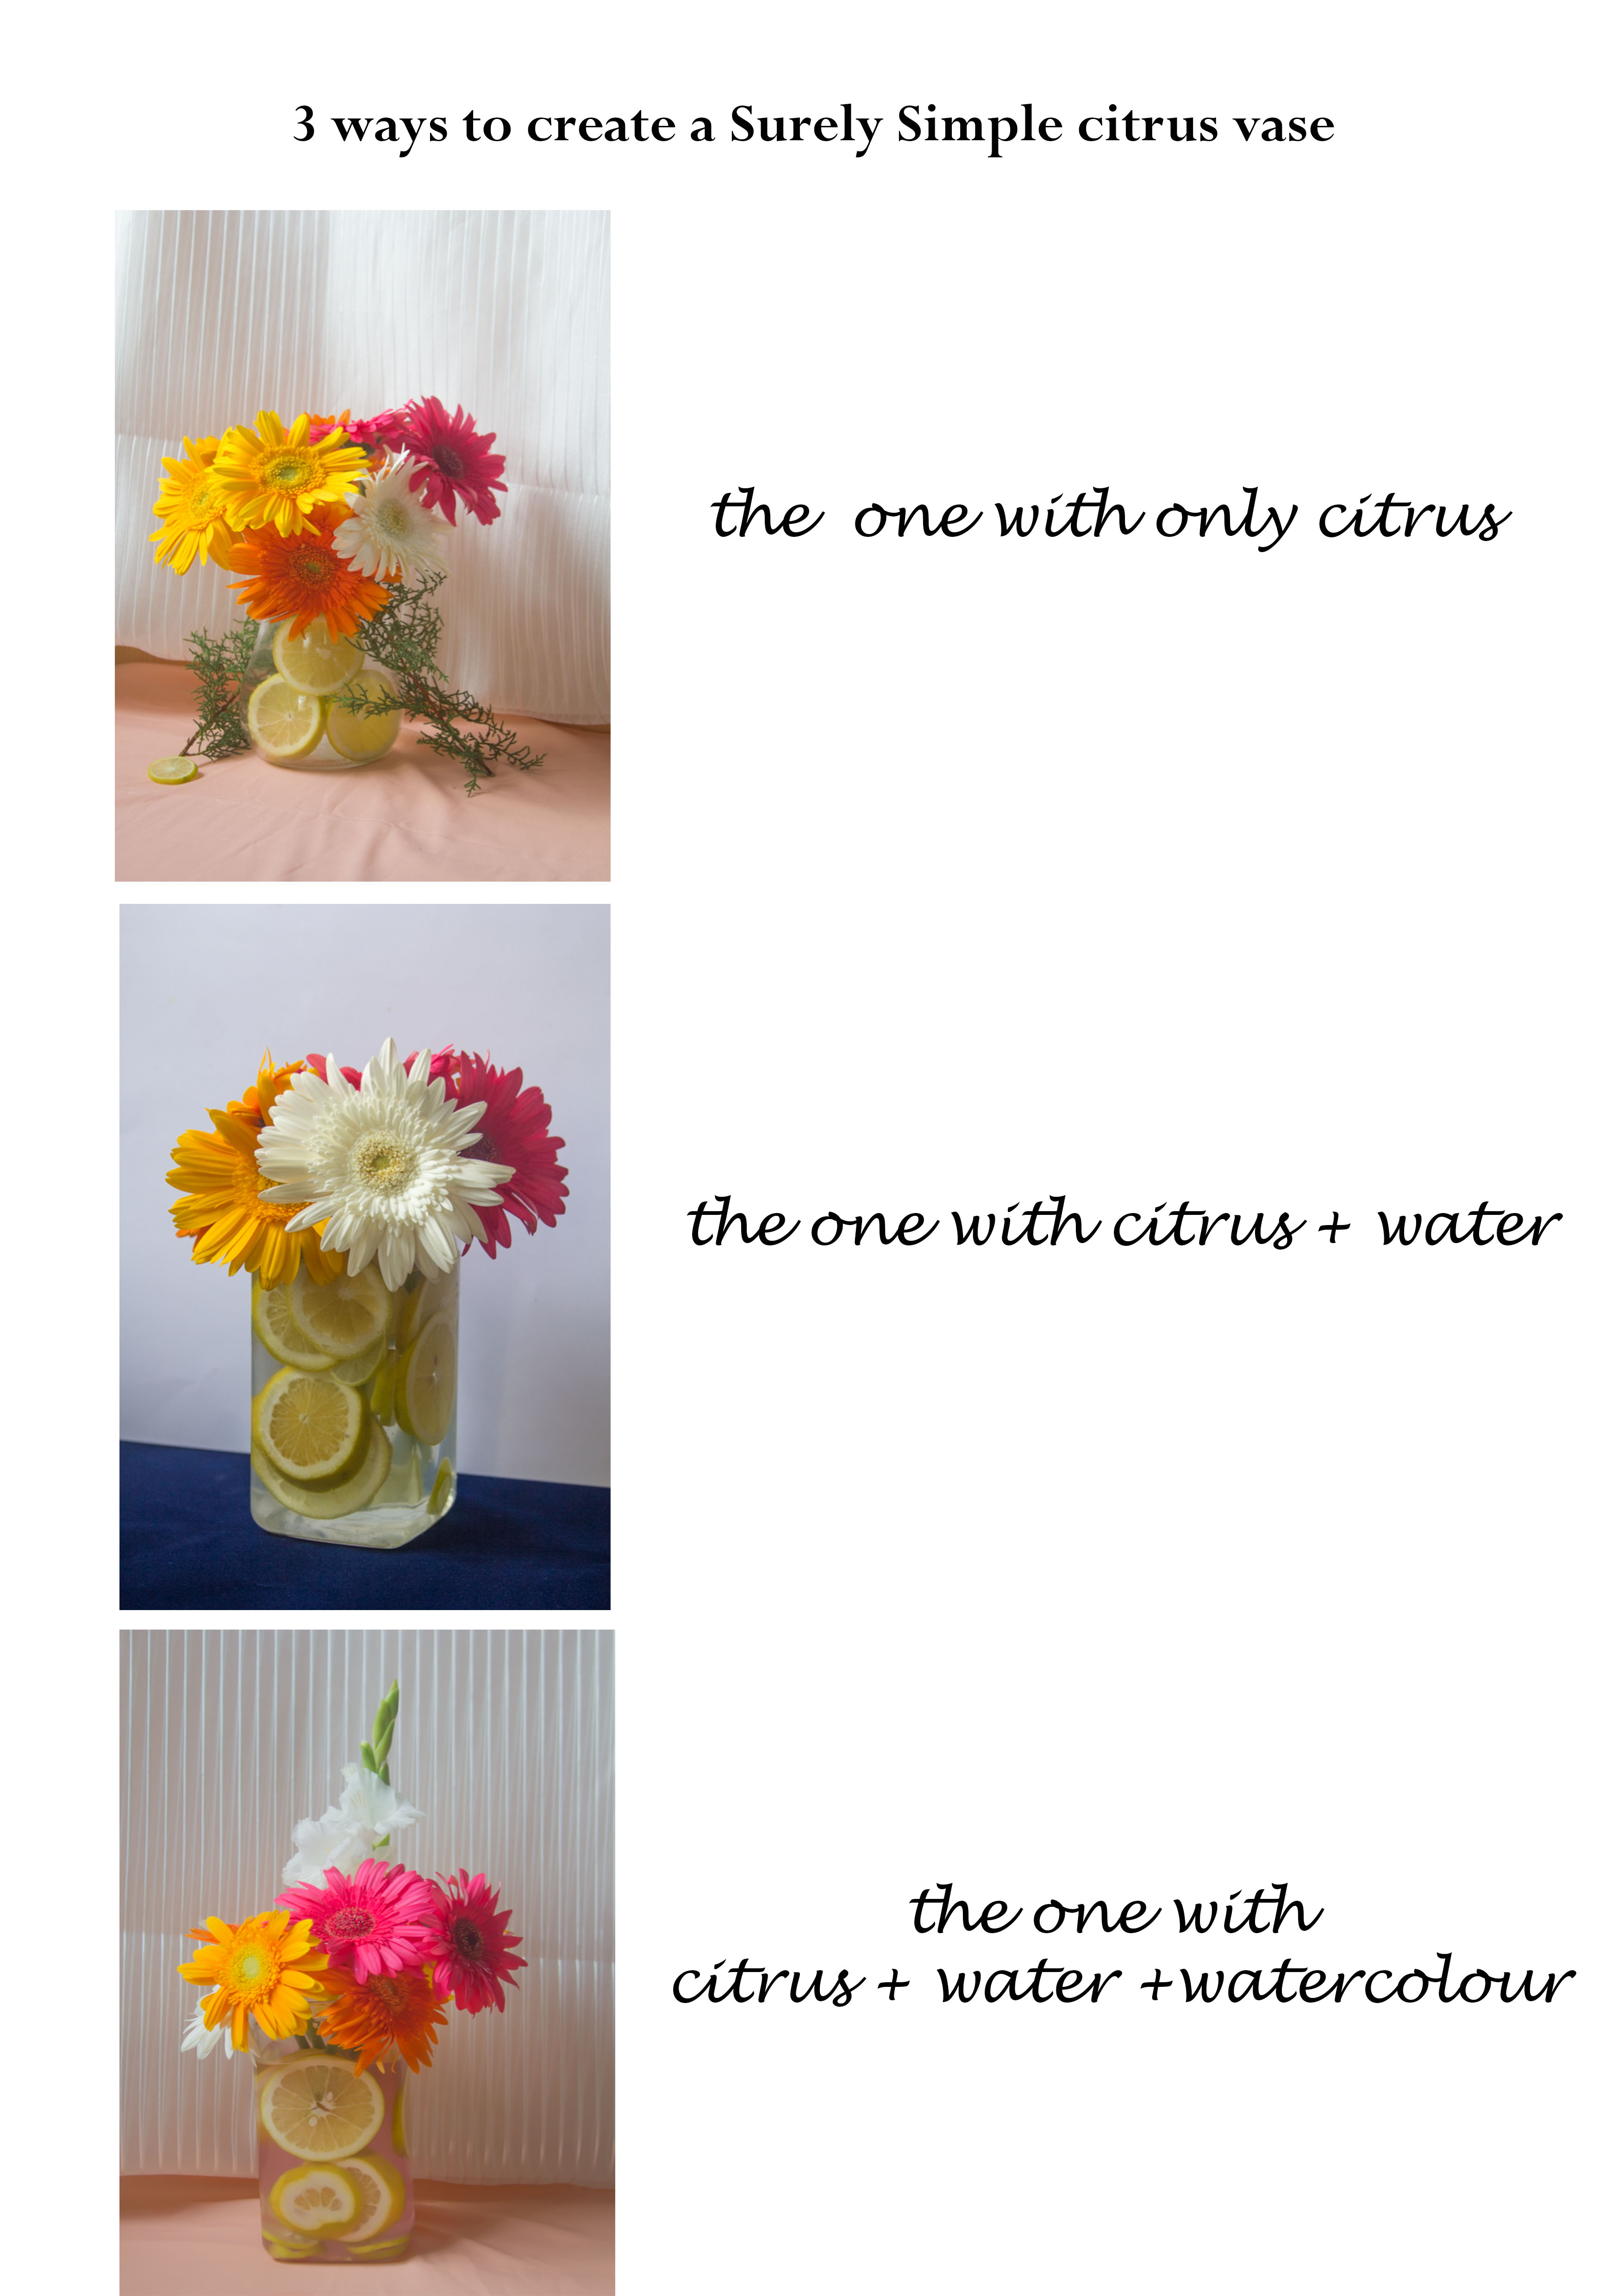 What you need to make fruity floral citrus vases